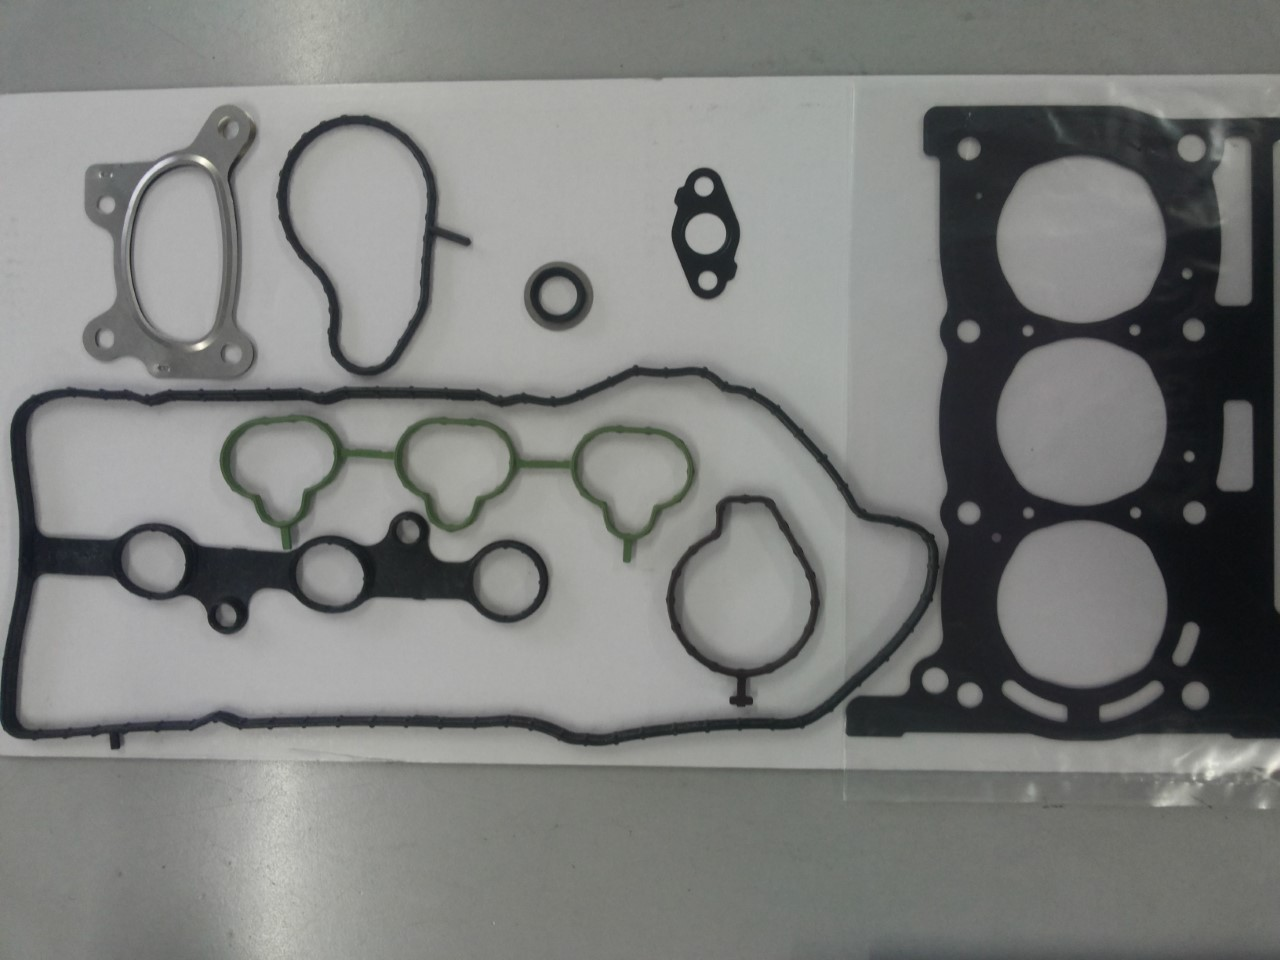 hight resolution of  1 3 variant of engine the 1 0 engine as stated in the brochure as a 1kr ve engine will this 1kr ve engine gasket have some surprise differences when